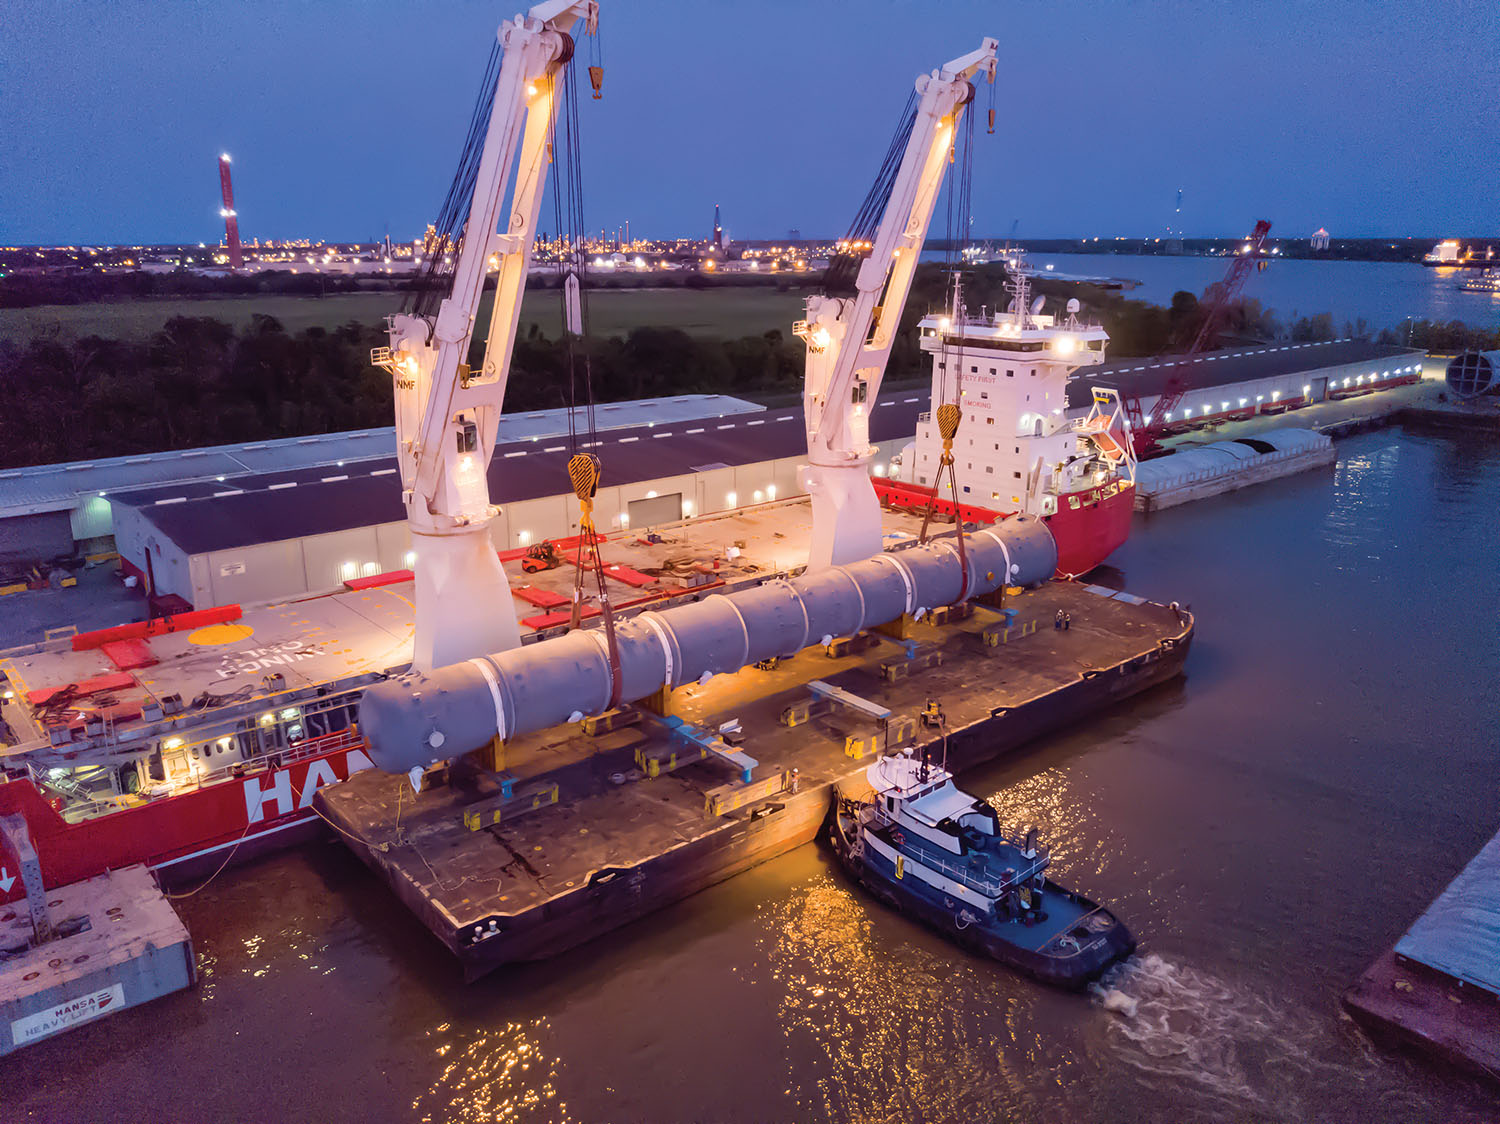 Project cargo is offloaded at Associated Terminal's Arabi, La., location on Chalmette Slip, part of the Port of St. Bernard. (Photo courtesy of Associated Terminals)